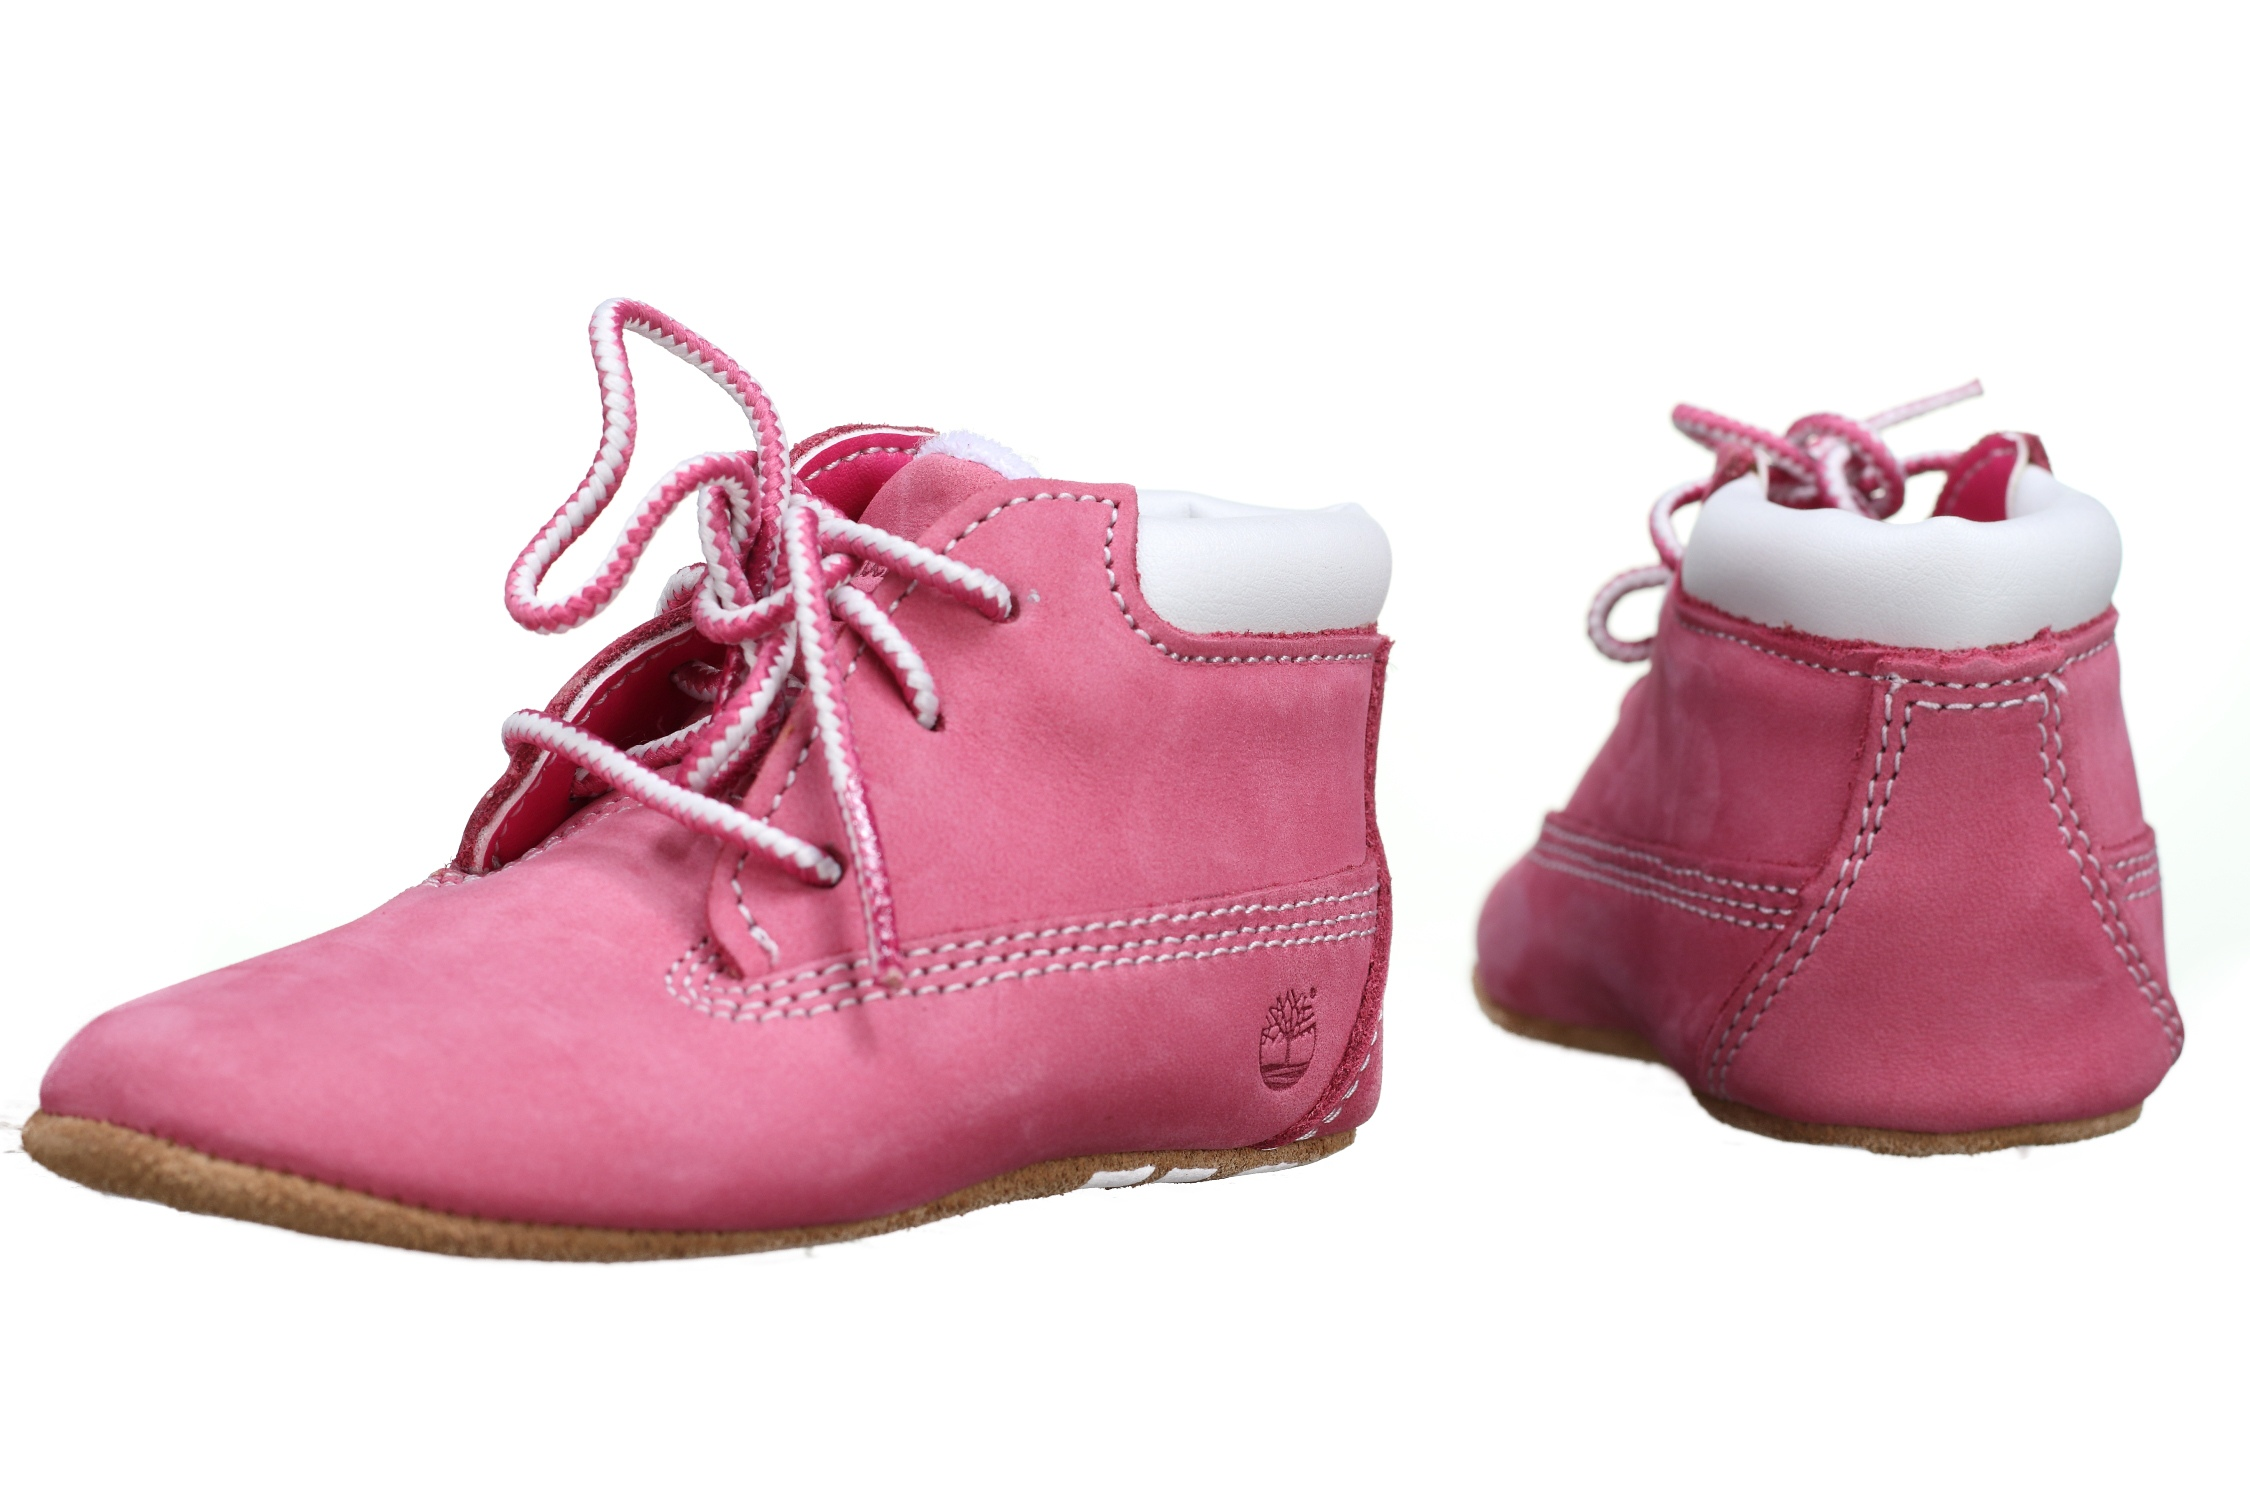 http://www.leadermode.com/131012/timberland-crib-bt-w-hat-9680r-rose.jpg